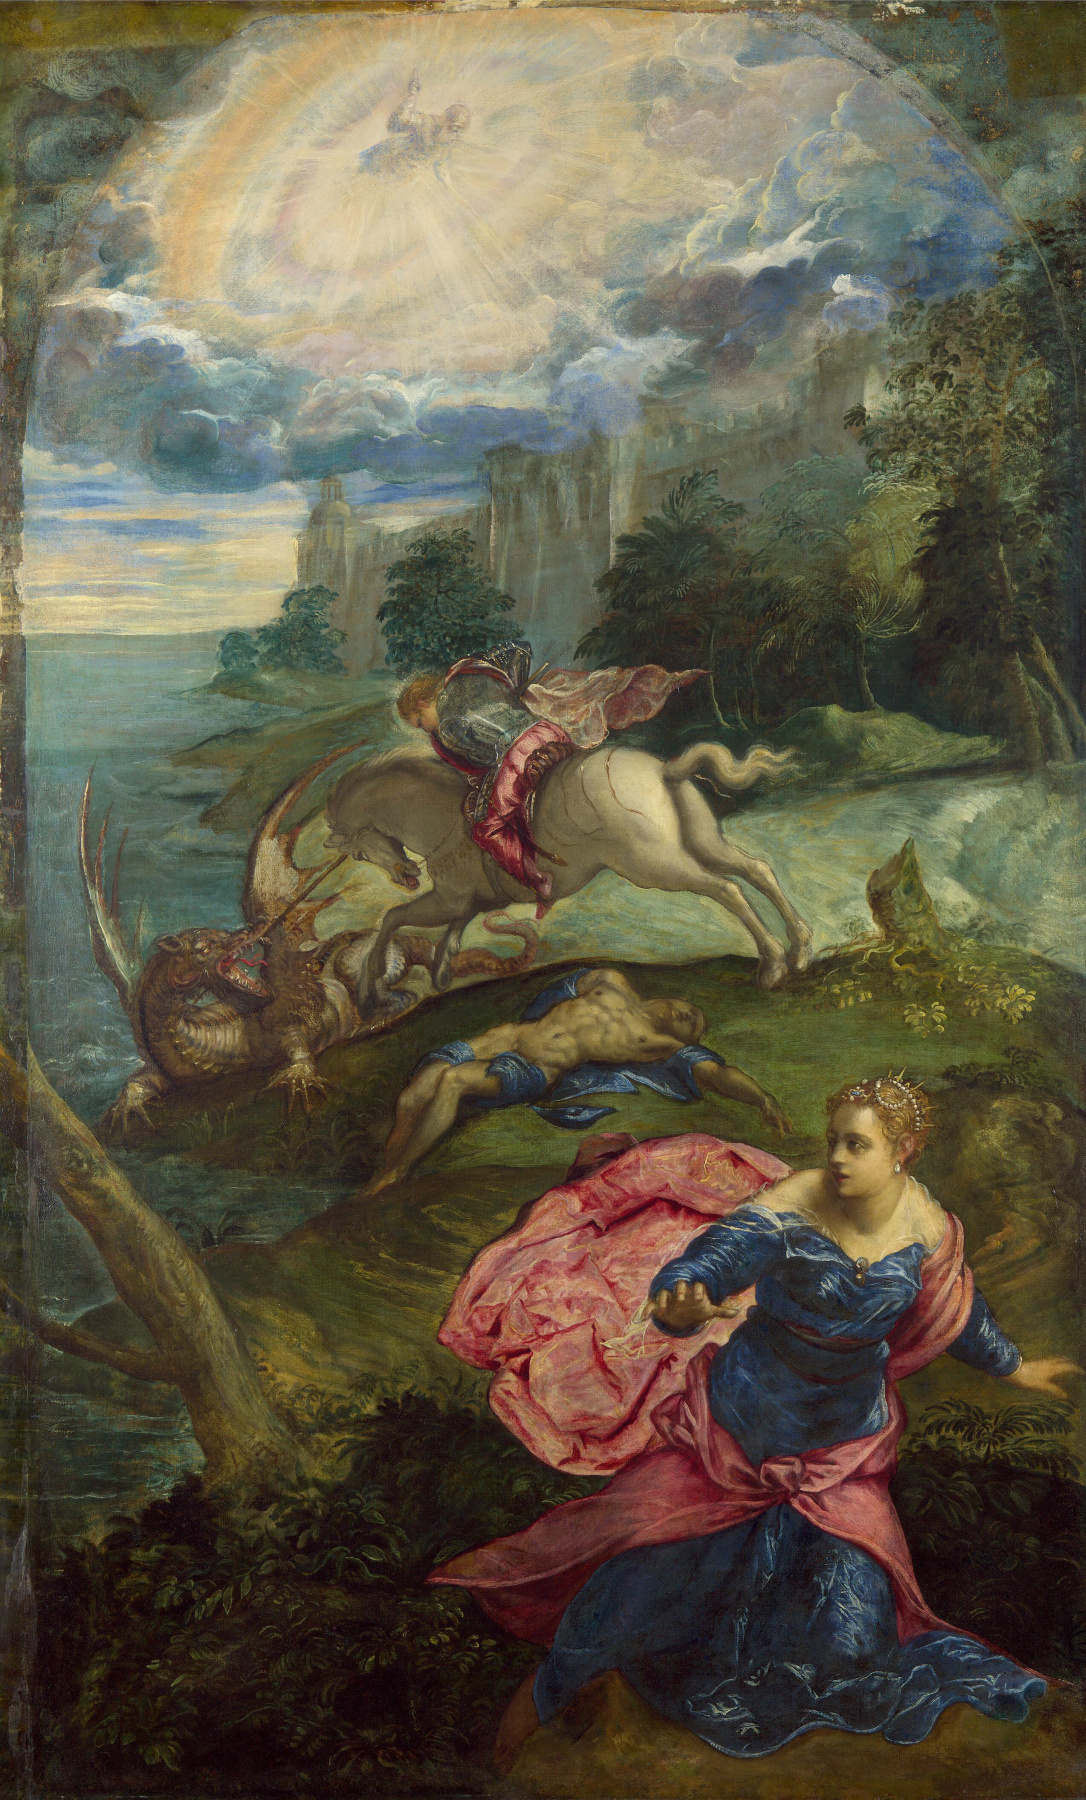 Jacopo (Robusti) Tintoretto. St. George and the Dragon